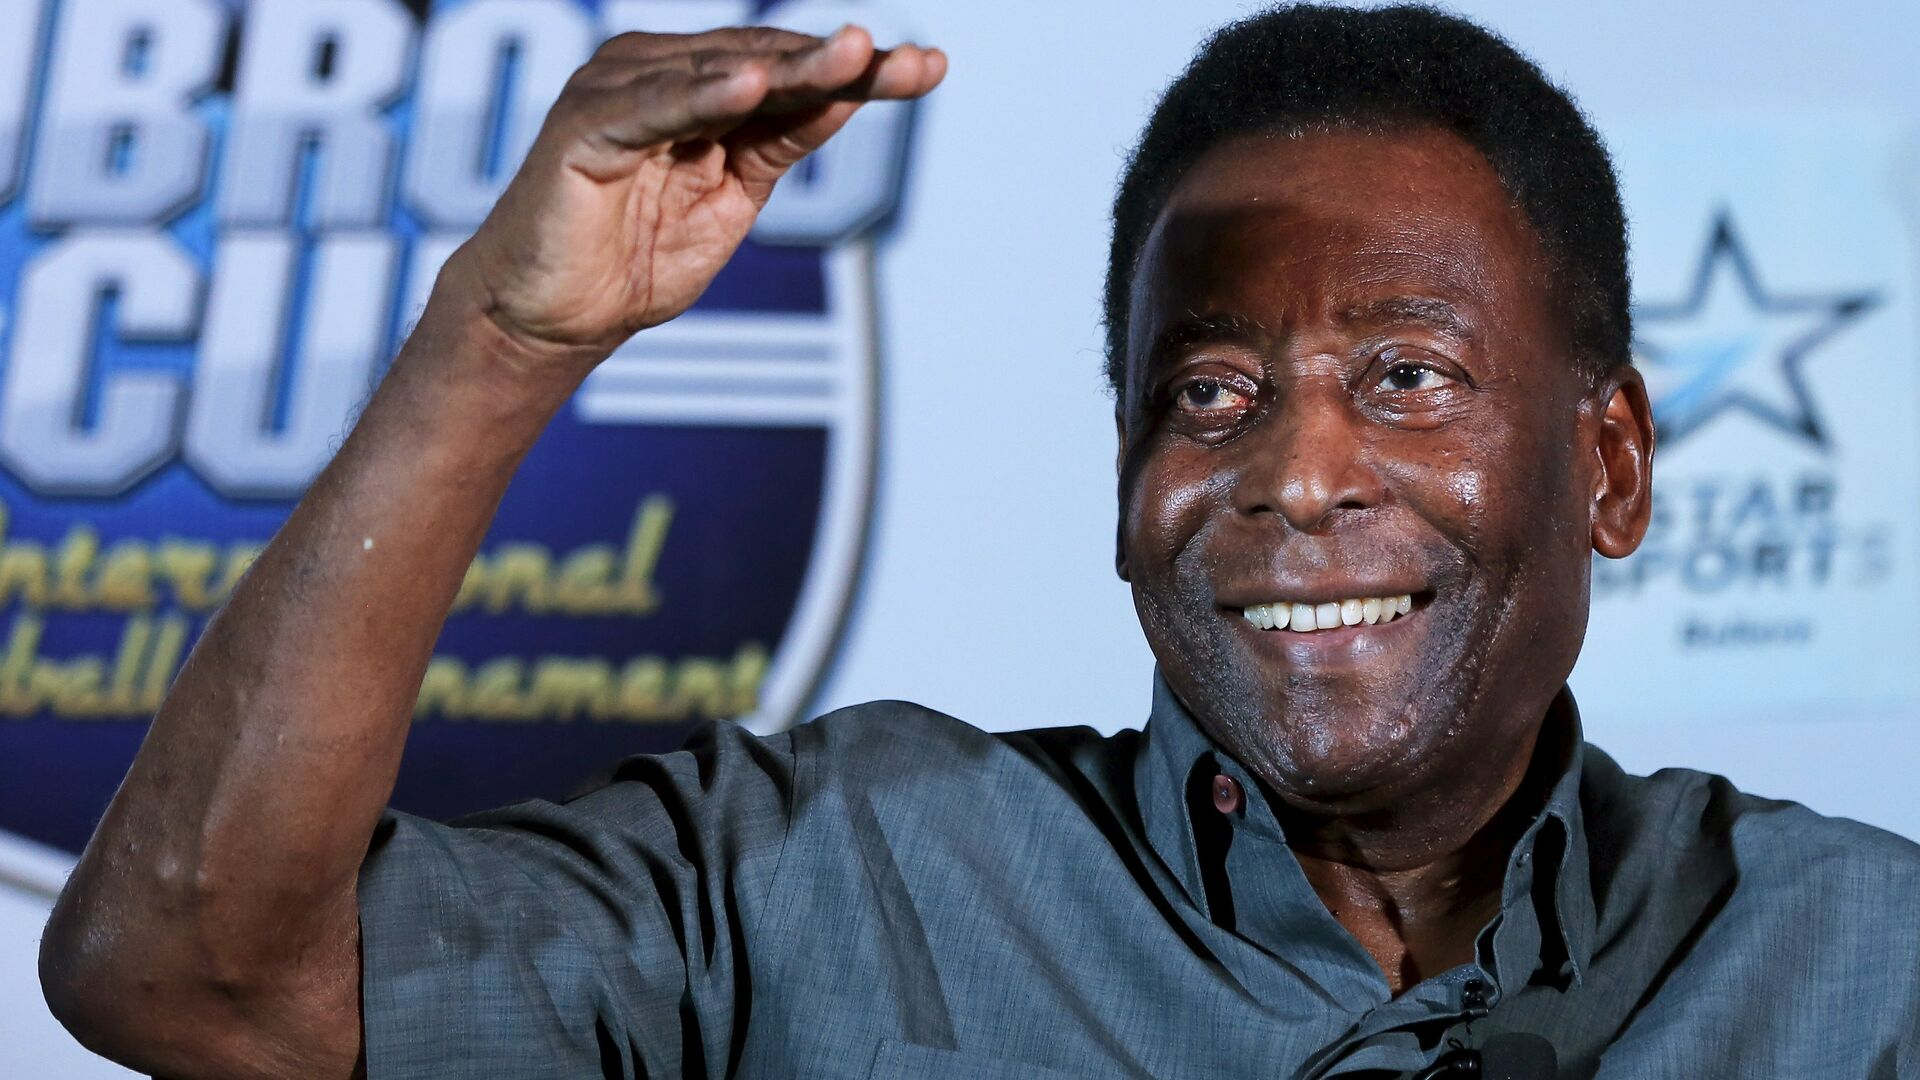 Legendary Brazilian soccer player Pele gestures during a news conference in Gurgaon on the outskirts of New Delhi, India, October 15, 2015 - Sputnik France, 1920, 26.09.2021